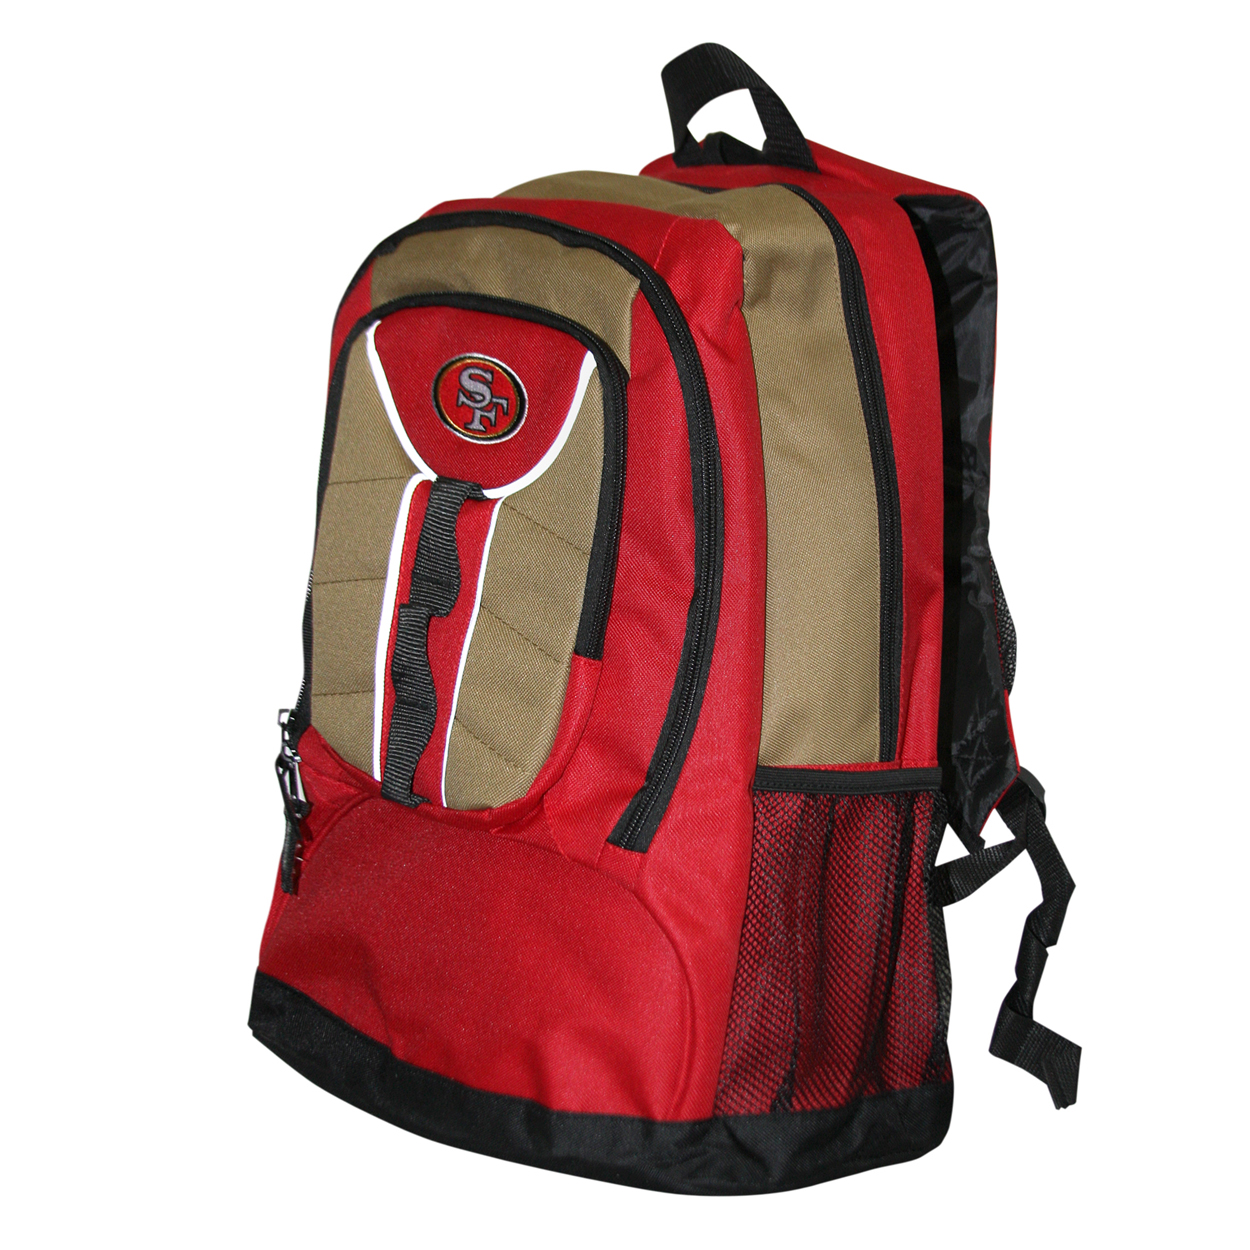 Colossus Backpack NFL Red - San Francisco 49ers